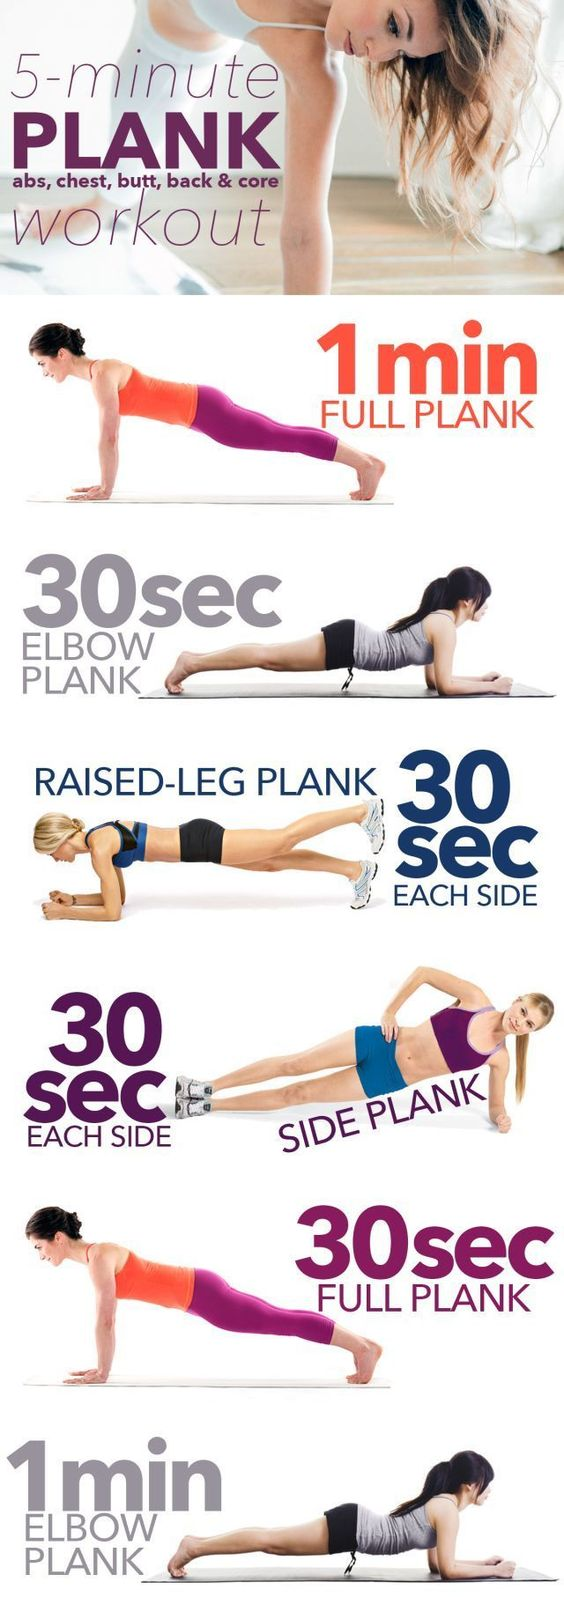 //9 Amazing Flat Belly Workouts To Help Sculpt Your Abs! #fitness